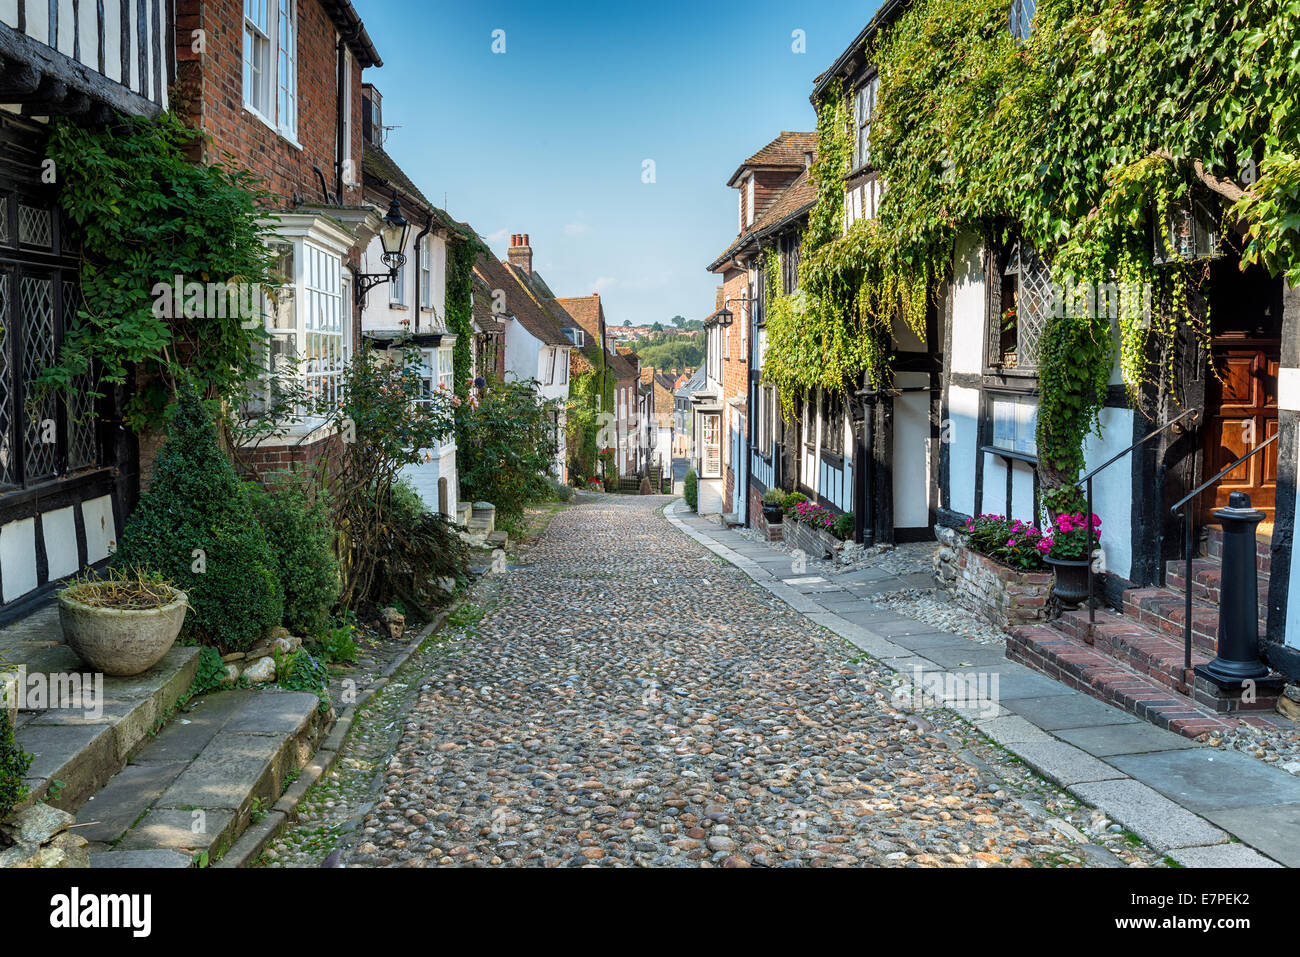 Rue pavée pittoresque dans la région de Rye, East Sussex Photo Stock